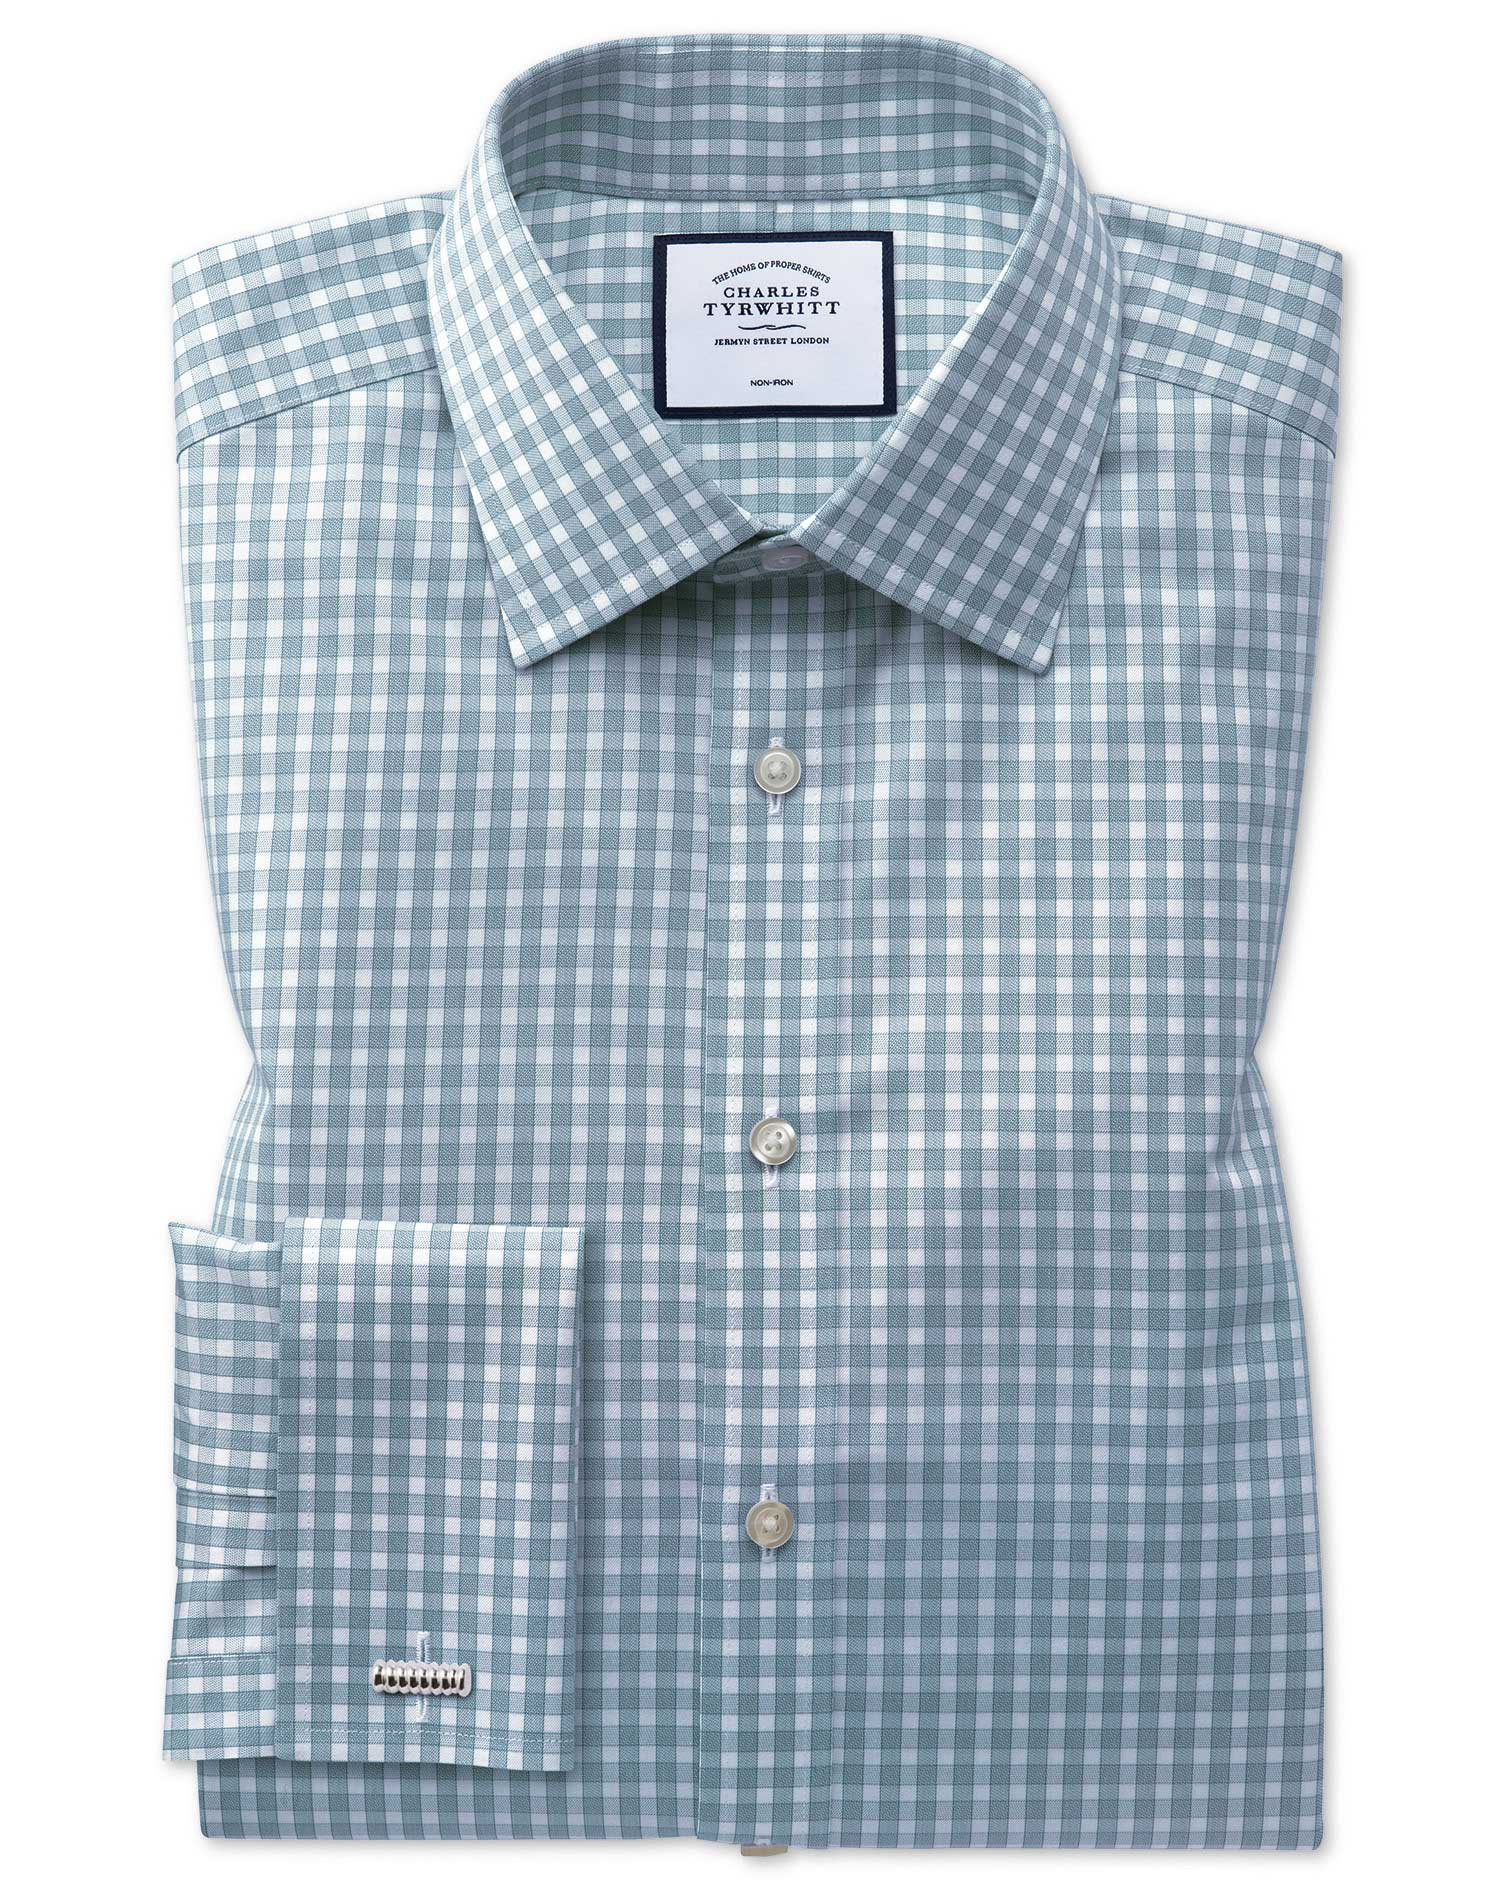 Classic Fit Non-Iron Twill Gingham Teal Cotton Formal Shirt Single Cuff Size 19/37 by Charles Tyrwhi